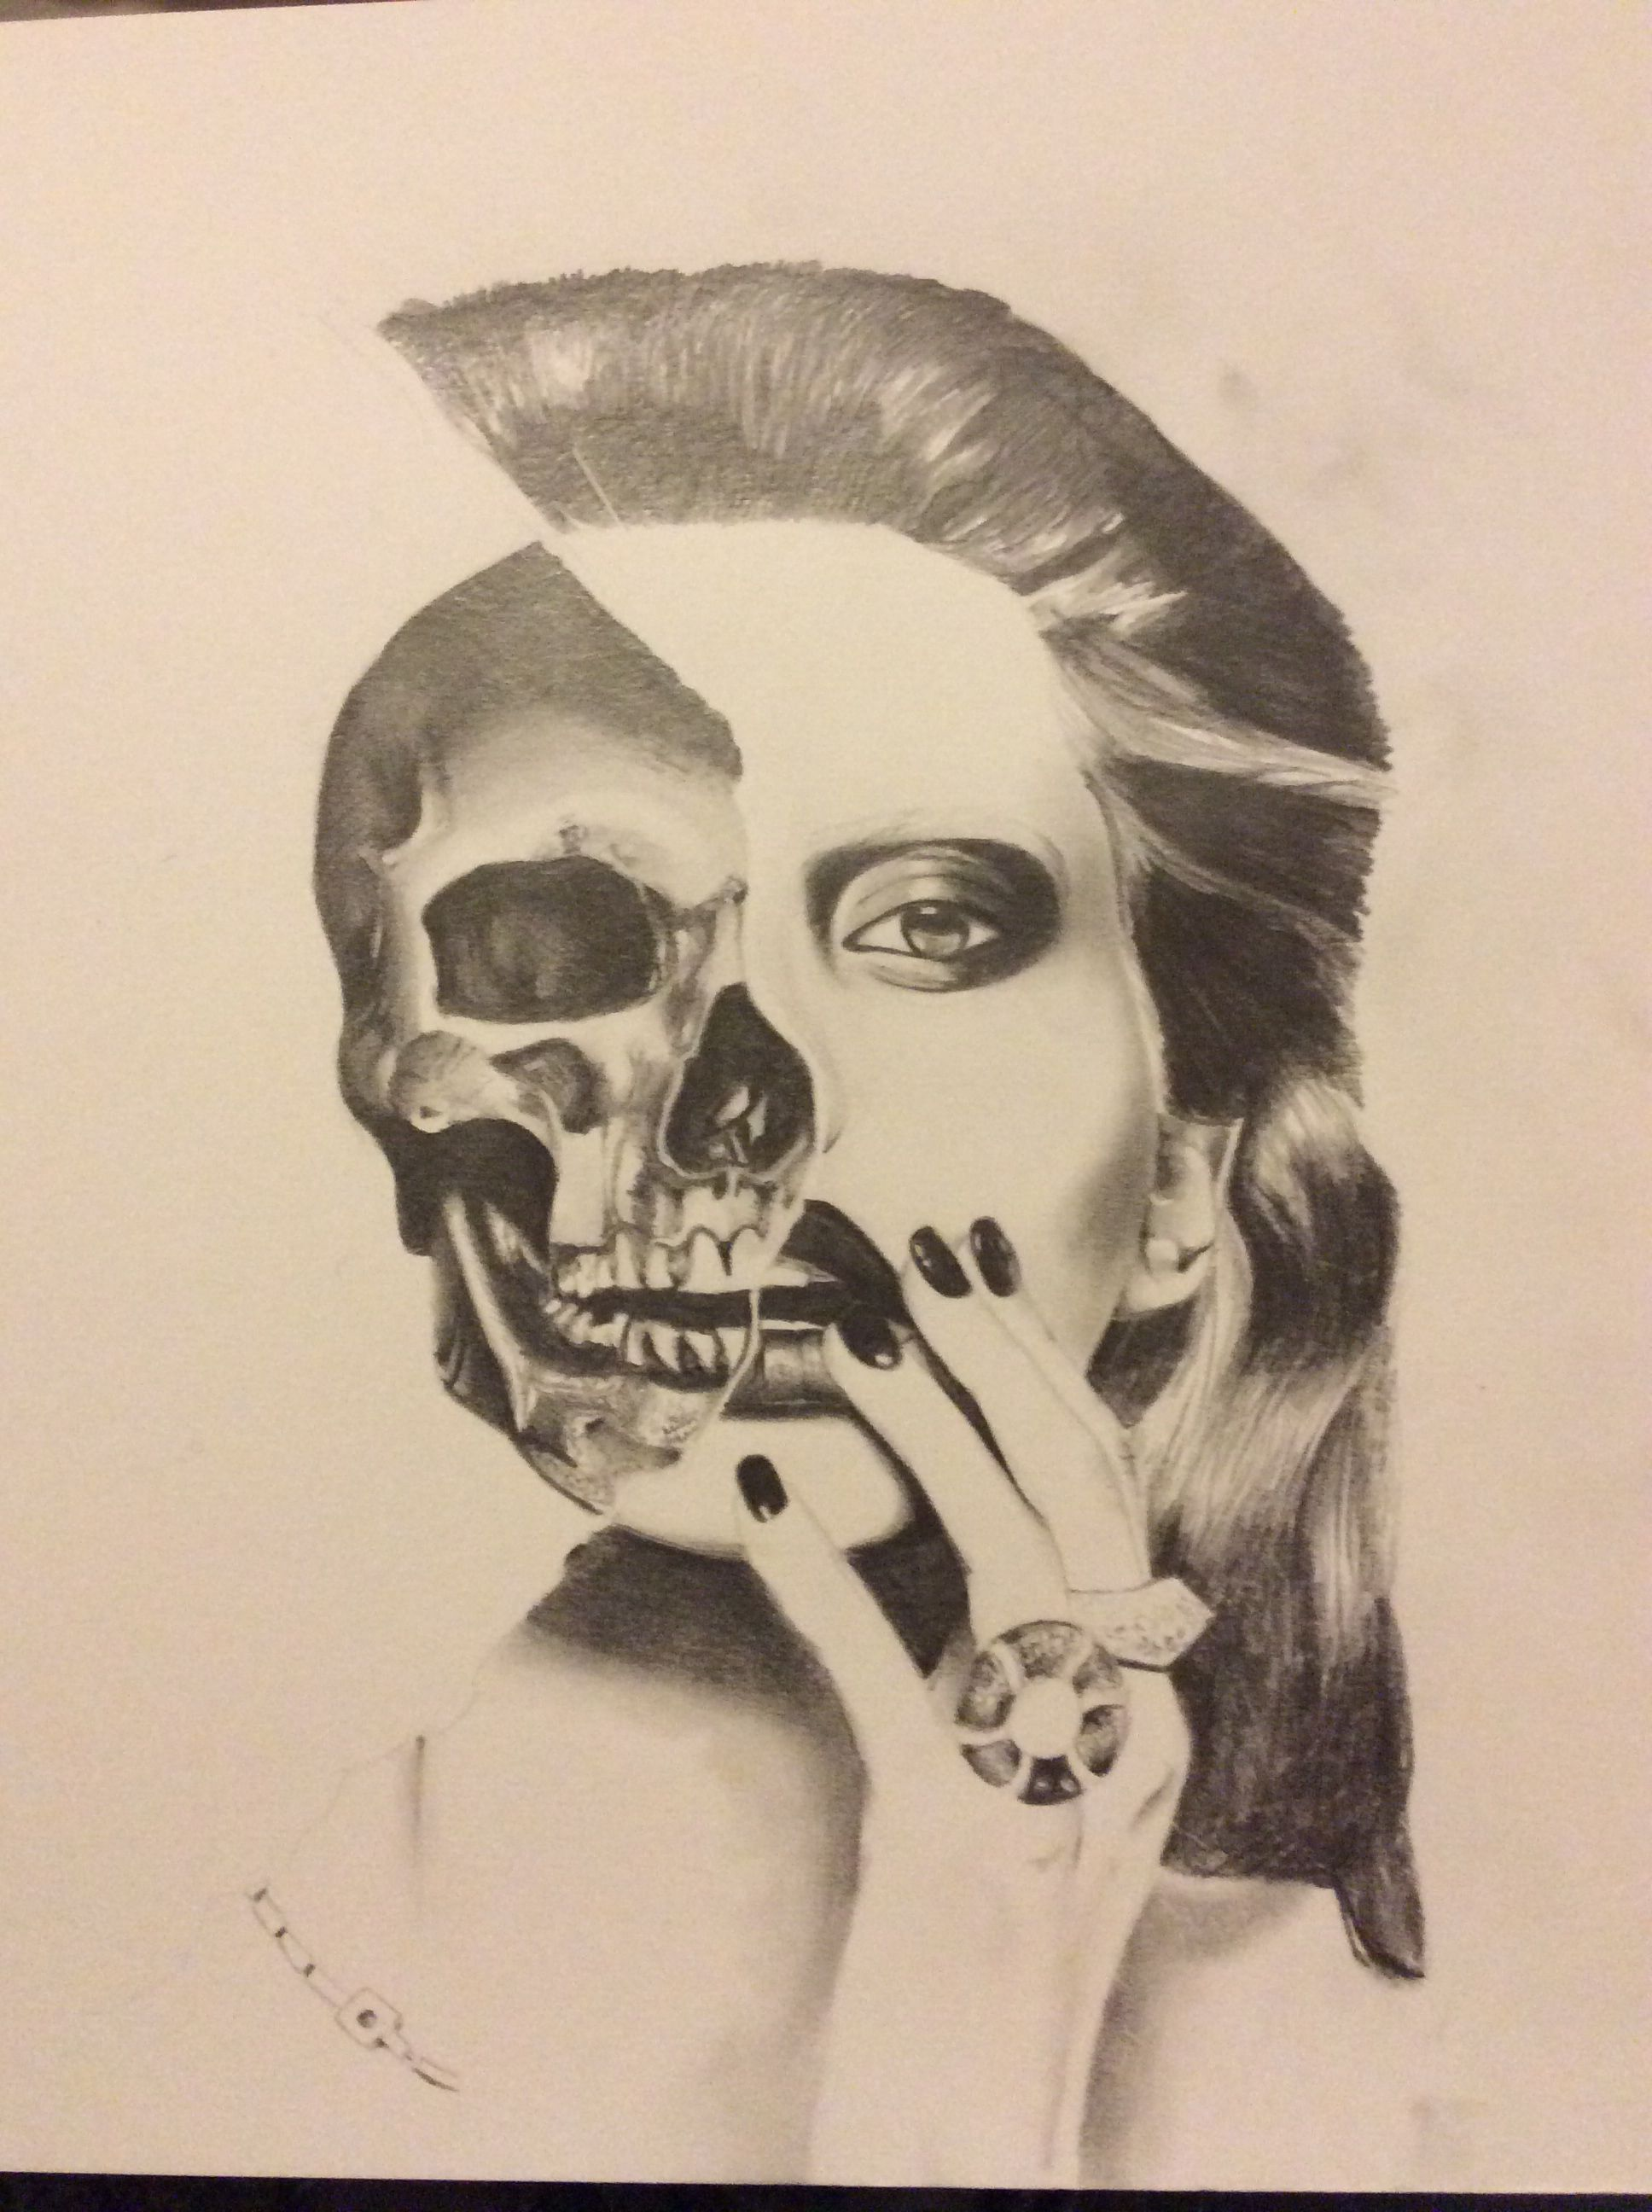 Half Skull Half Face Drawing